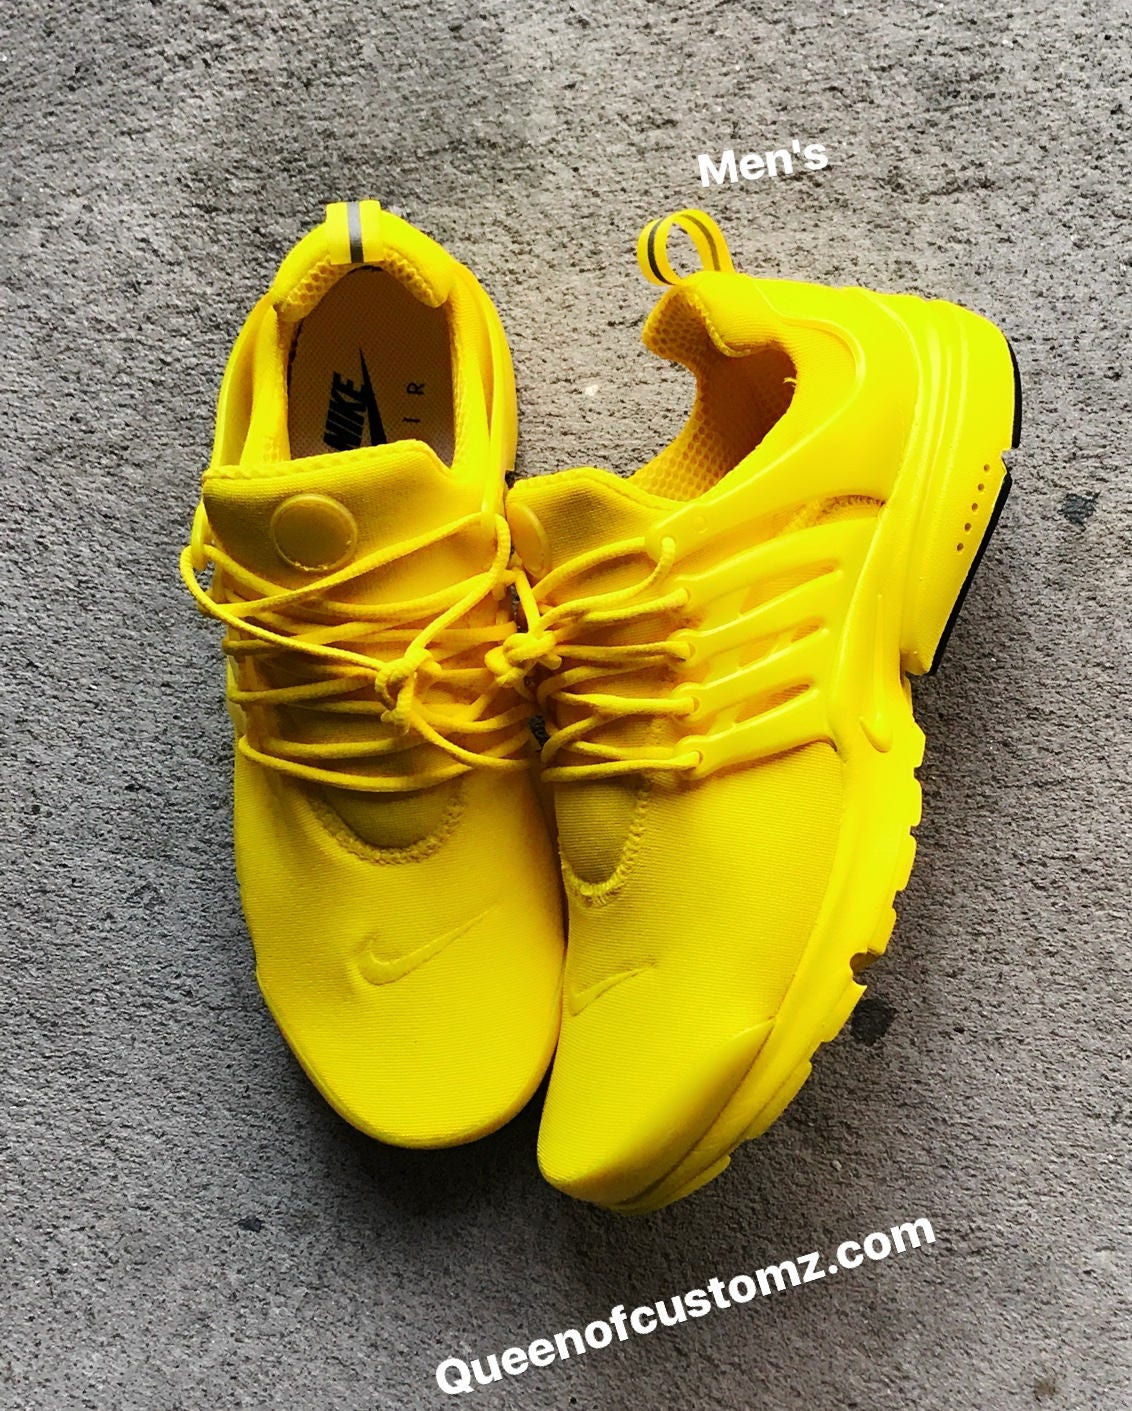 new products 7baf1 43faa Sunshine Yellow Nike Presto Custom (PLEASE READ DESCRIPTION)